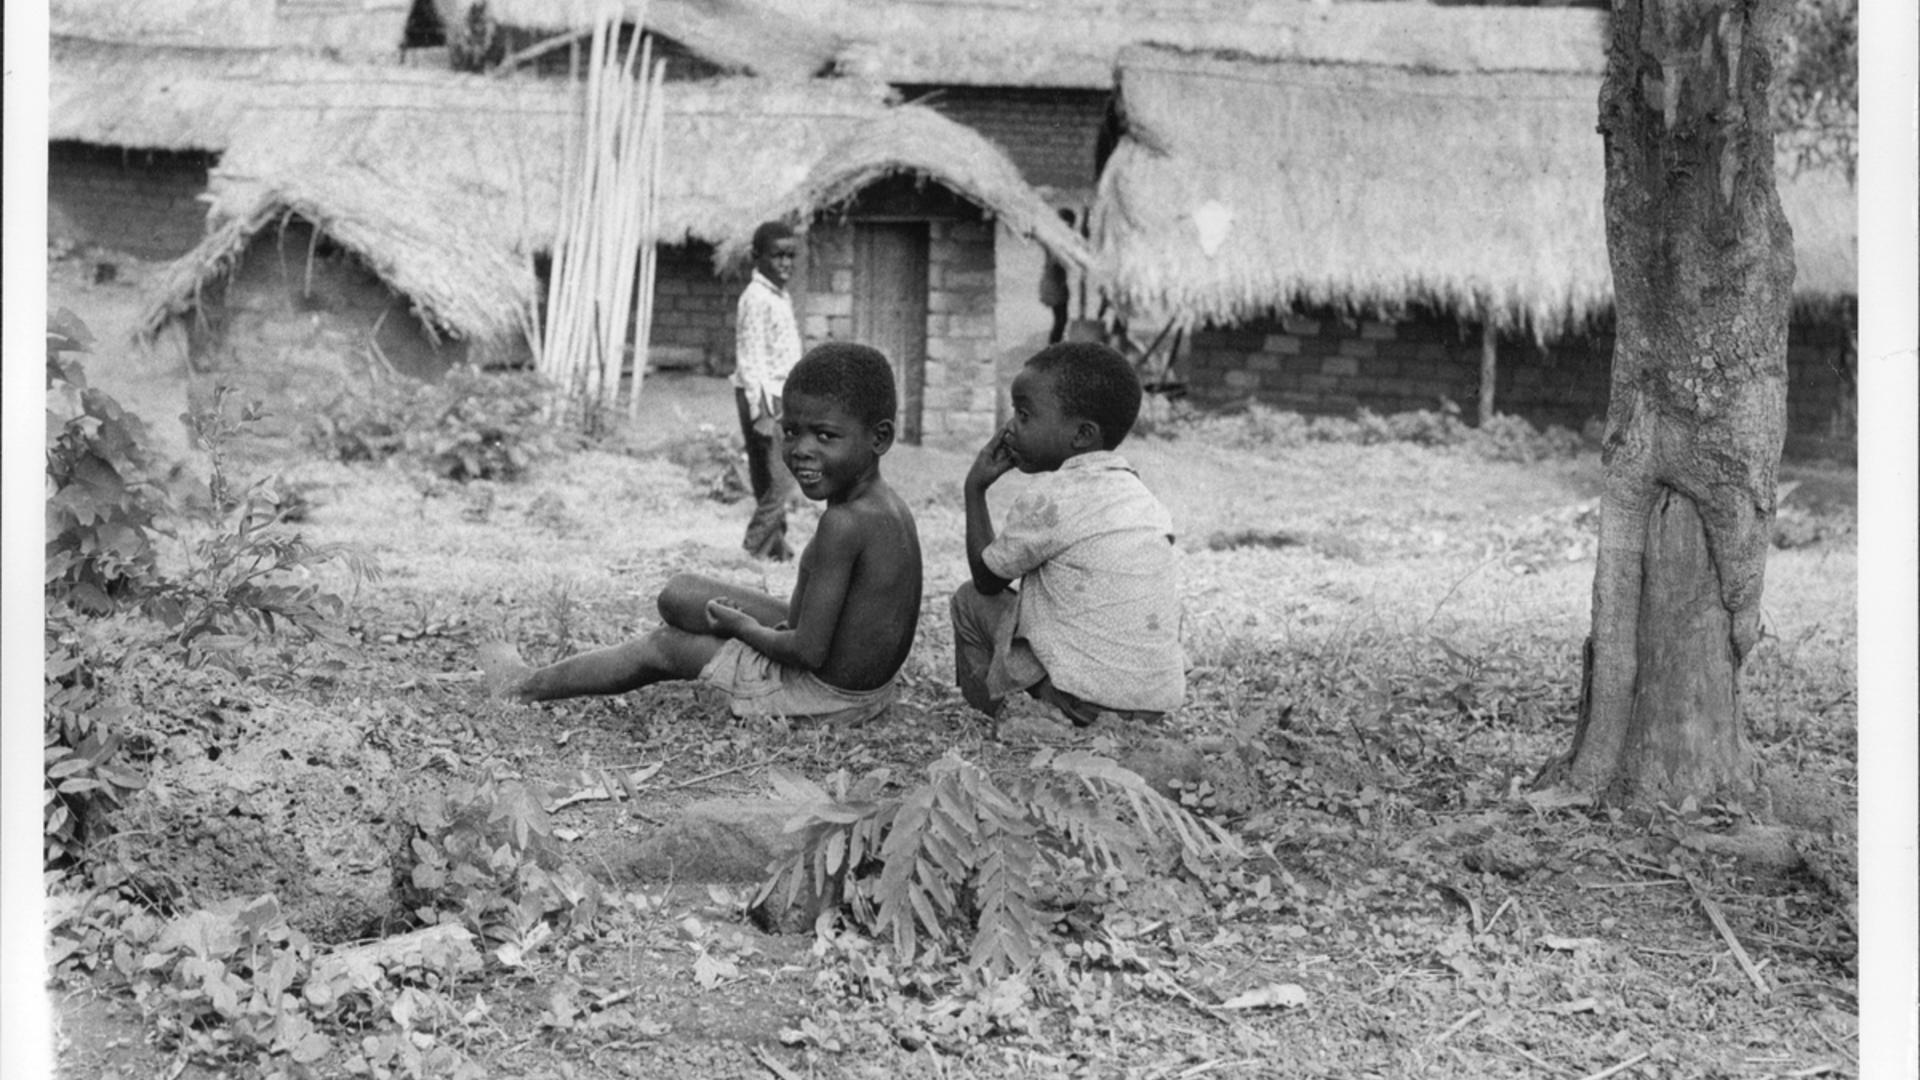 Angolan refugee children sit on the ground outside a row of houses in Zaire.